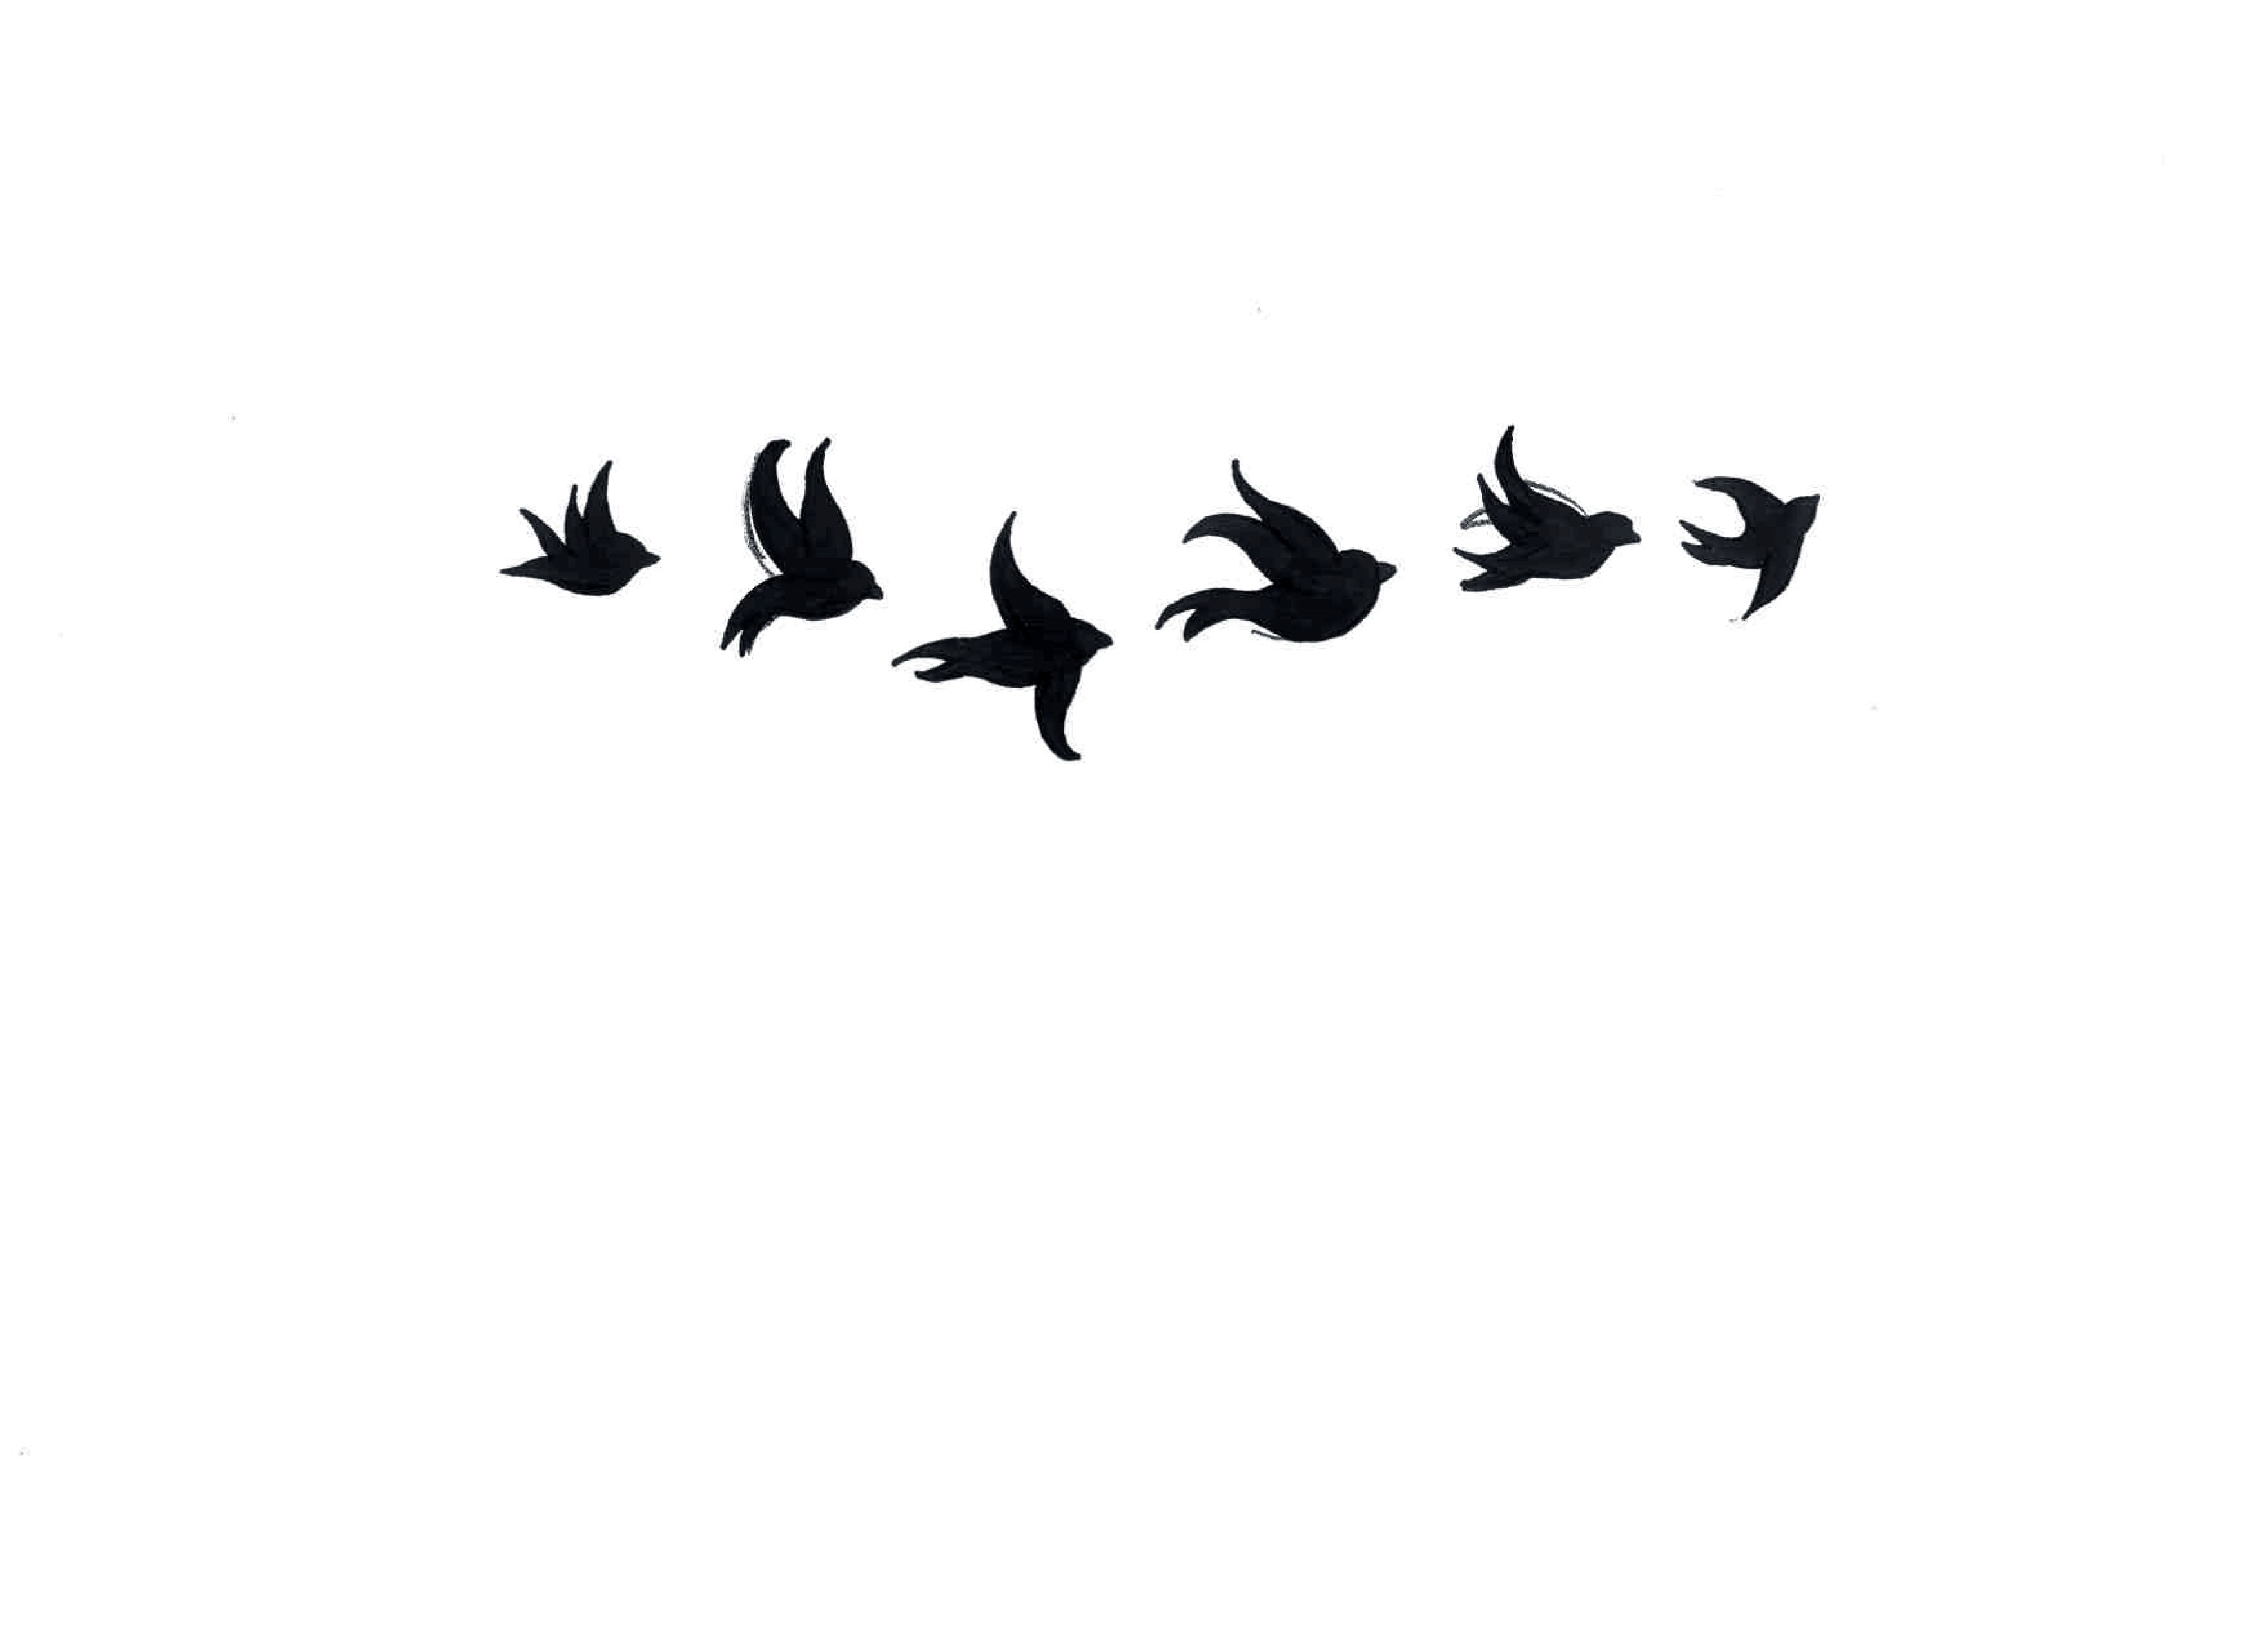 Bird tattoos designs ideas and meaning tattoos for you -  My Fav Bird Tattoos And Their Meanings Bird Tattoos Designs Ideas And